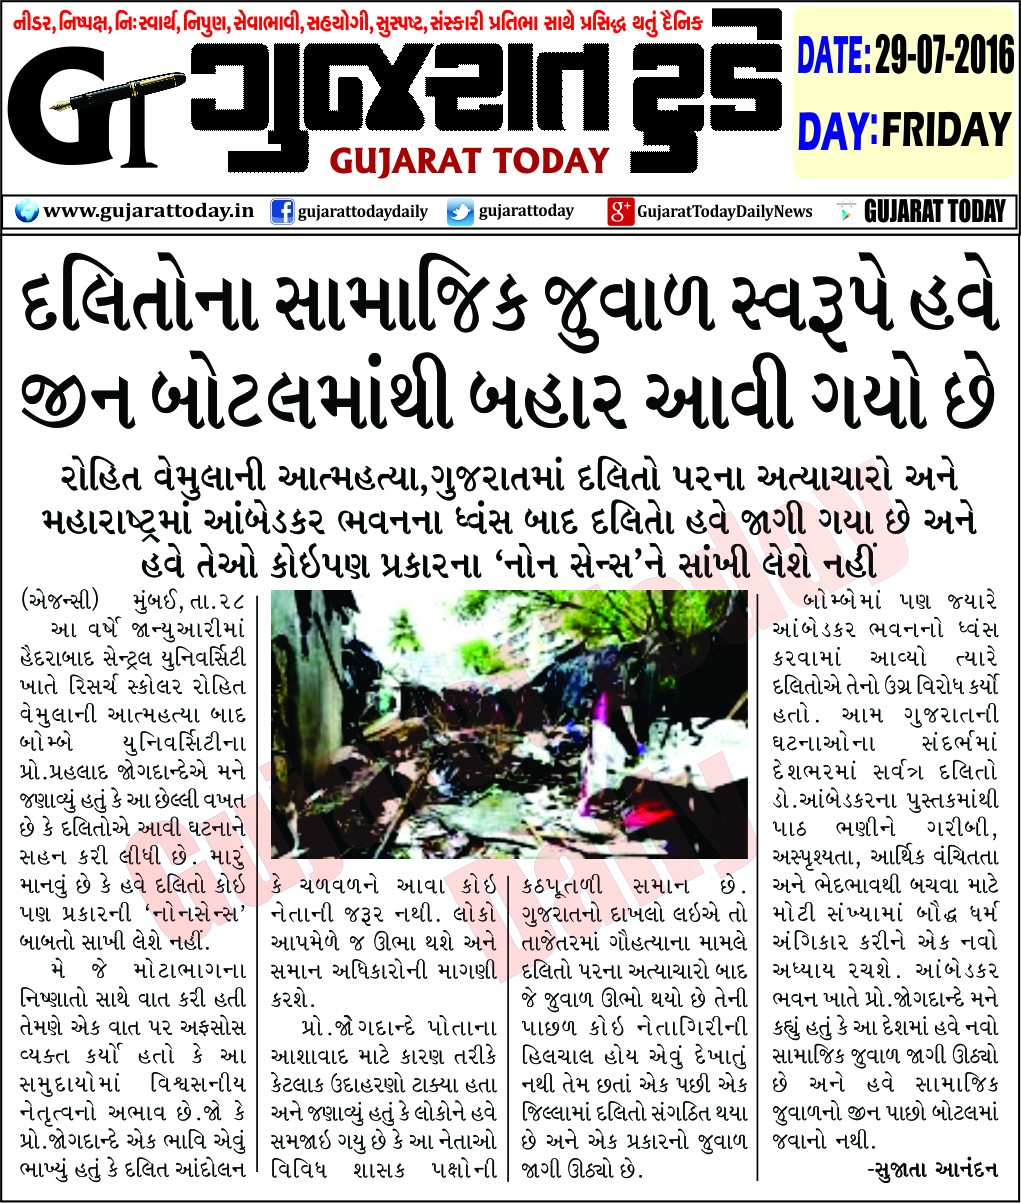 GUJARAT TODAY DAILY